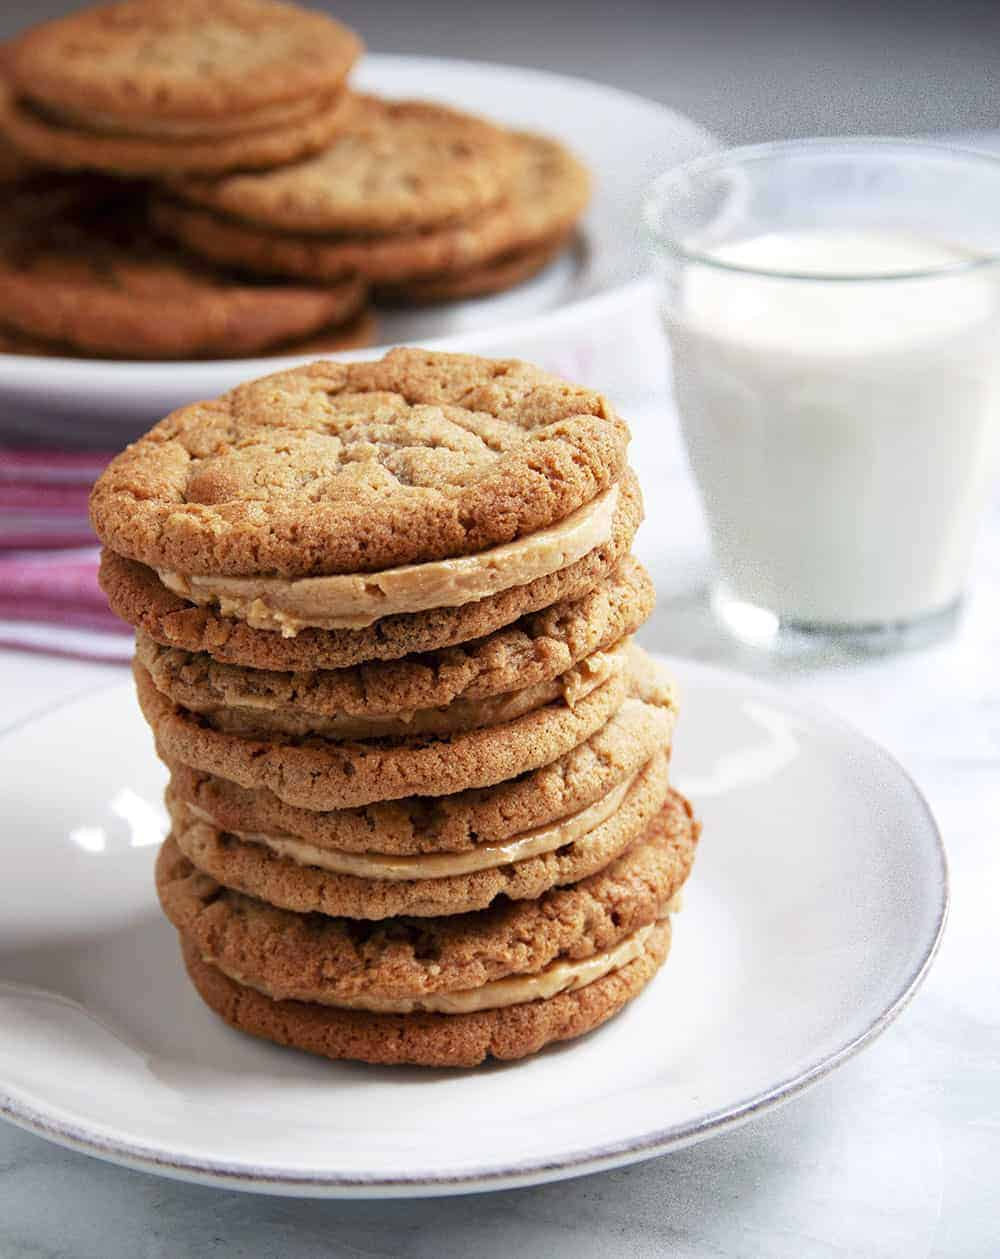 Peanut Butter Sandwich Cookie Stack with glass of milk